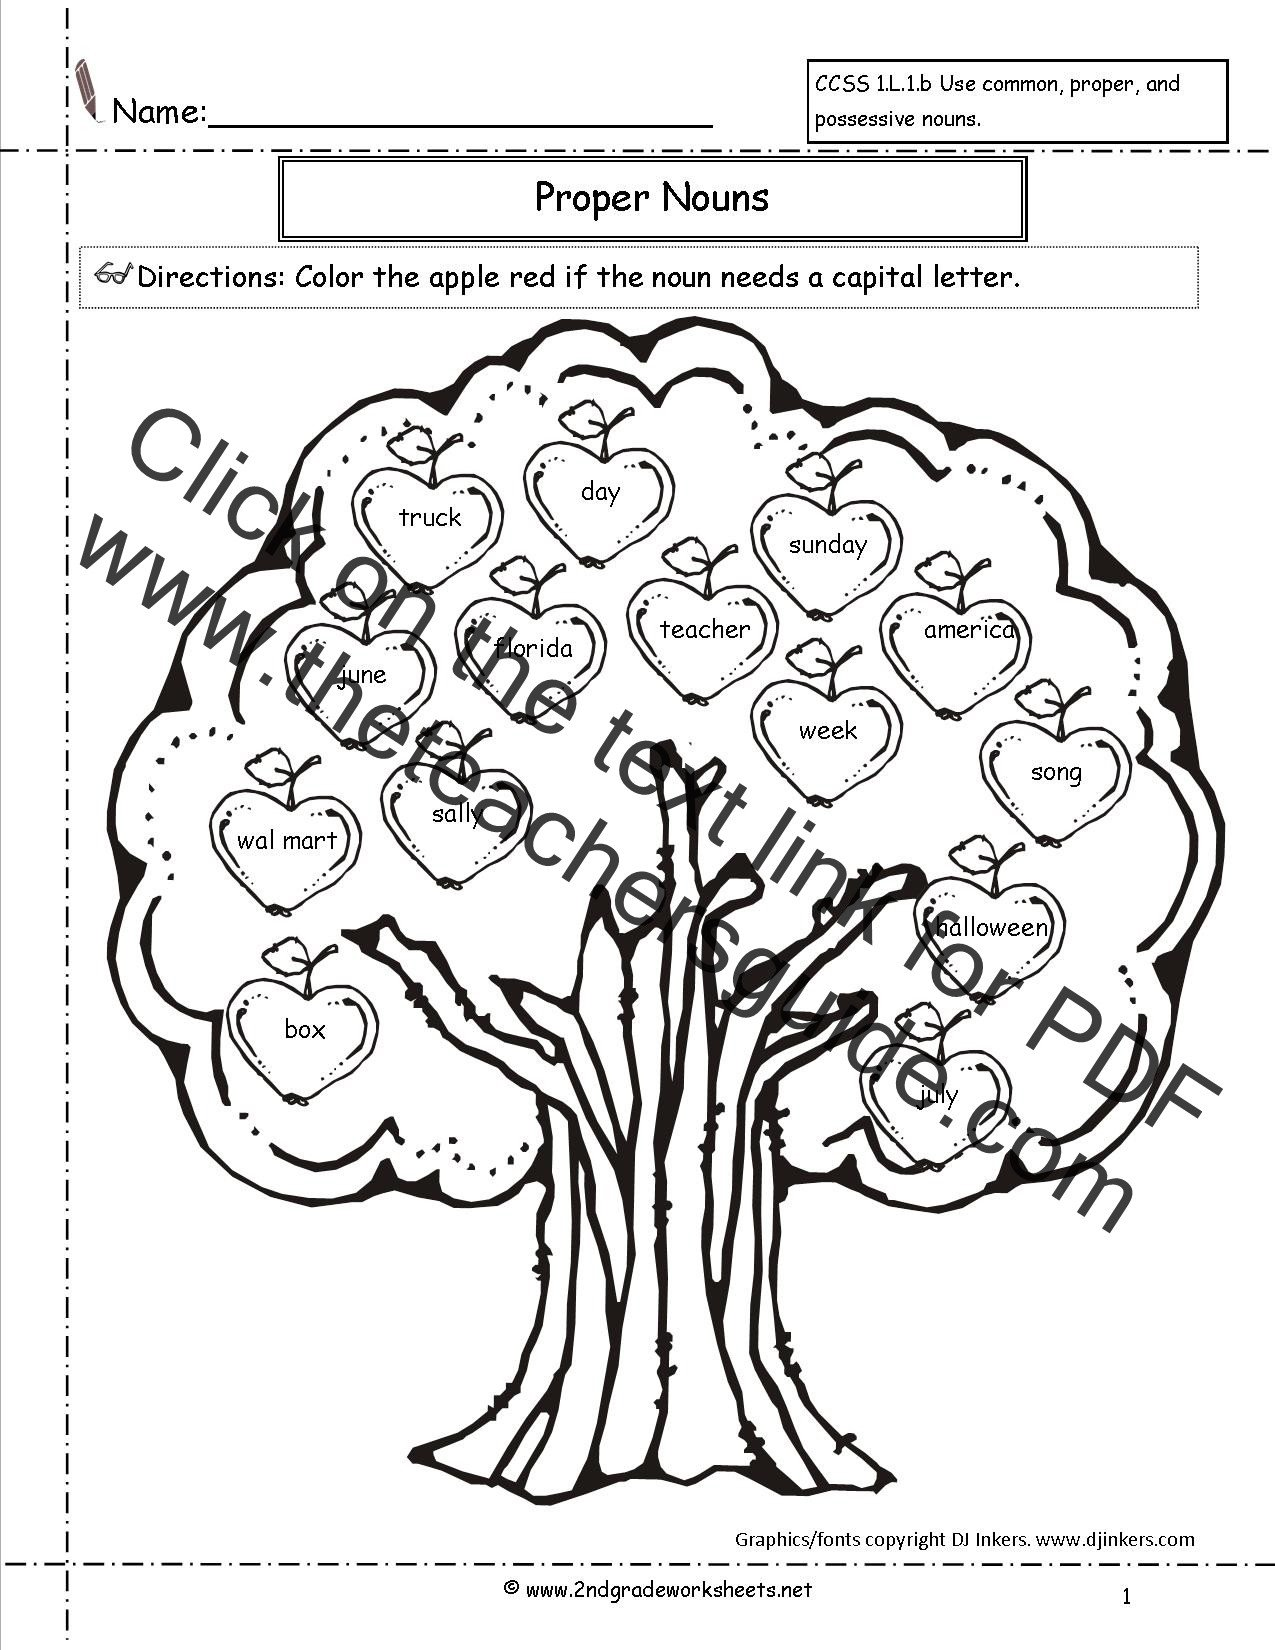 Free Proper Noun Worksheets Mon and Proper Nouns Worksheet